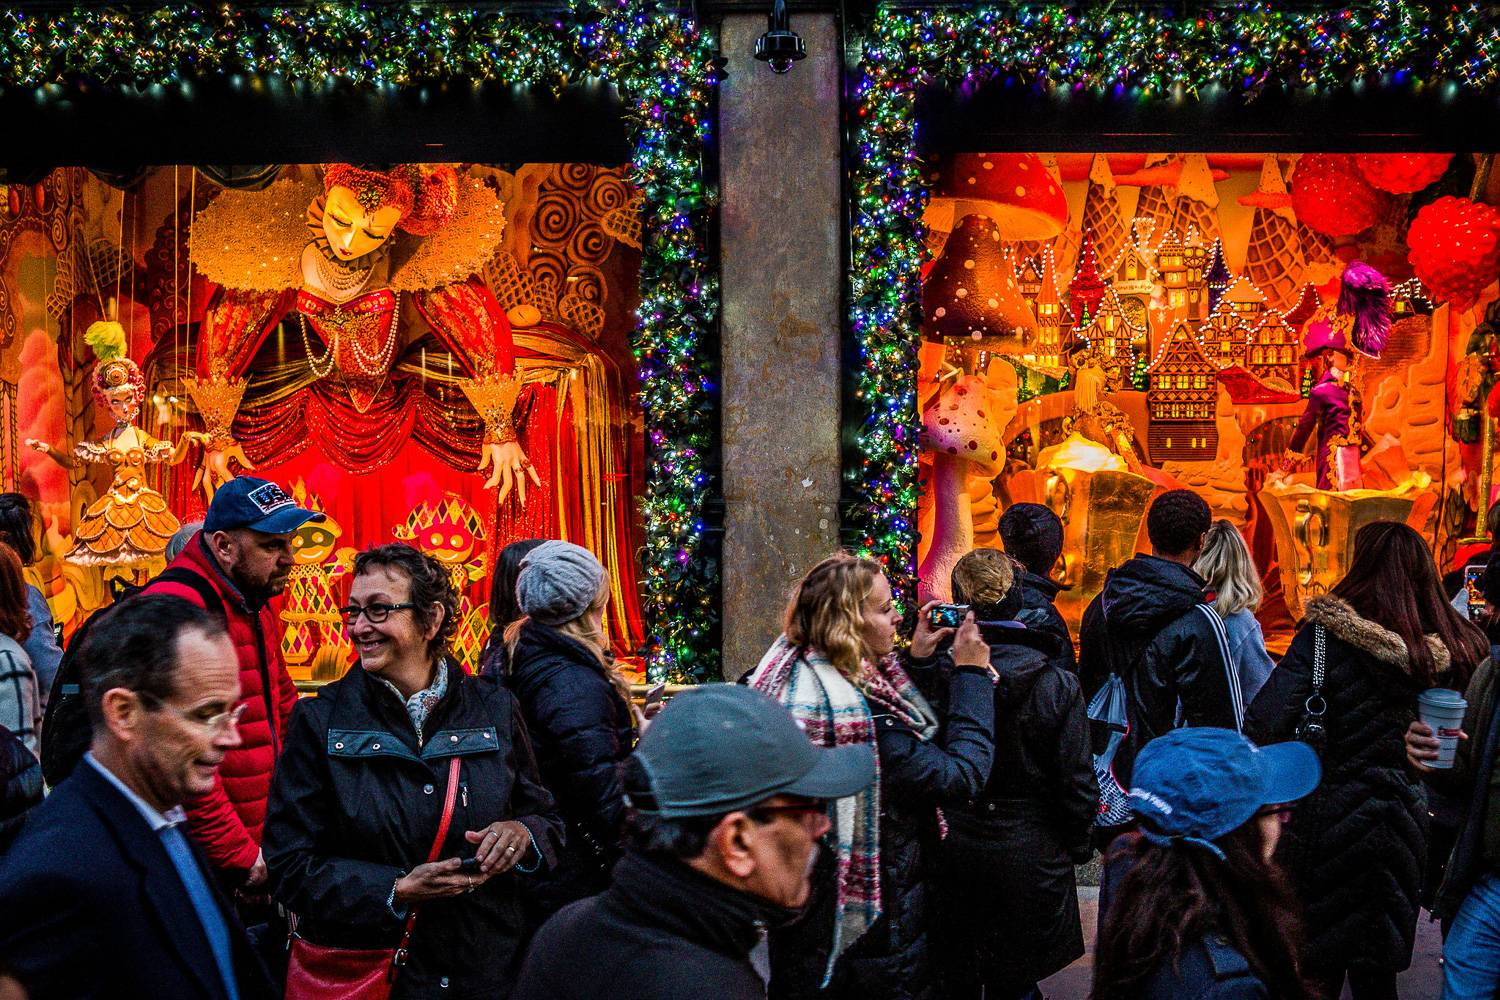 Image of tourists in winter wear outside of store windows decorated for the holidays